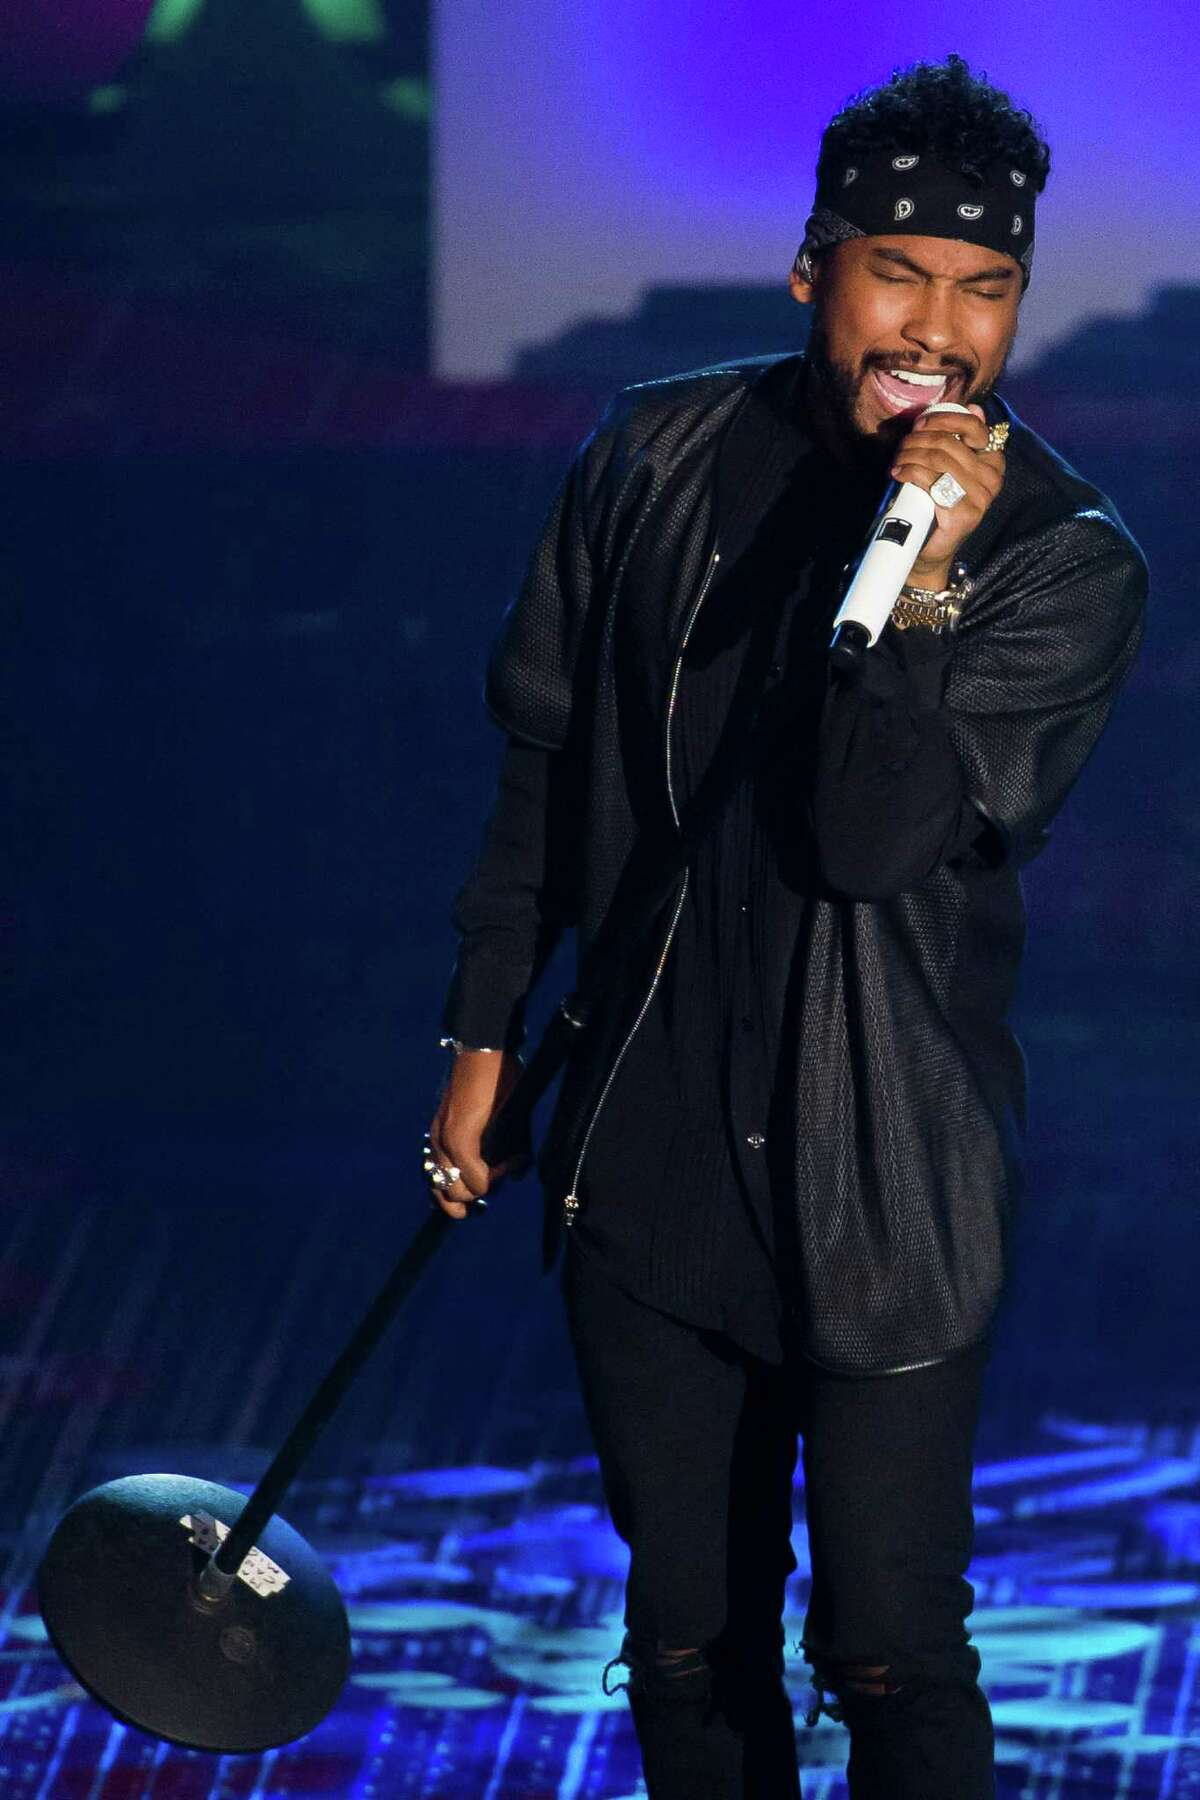 Miguel performs at the Songwriters Hall of Fame Awards on Thursday, June 12, 2014 in New York. (Photo by Charles Sykes/Invision/AP) ORG XMIT: NYCS114